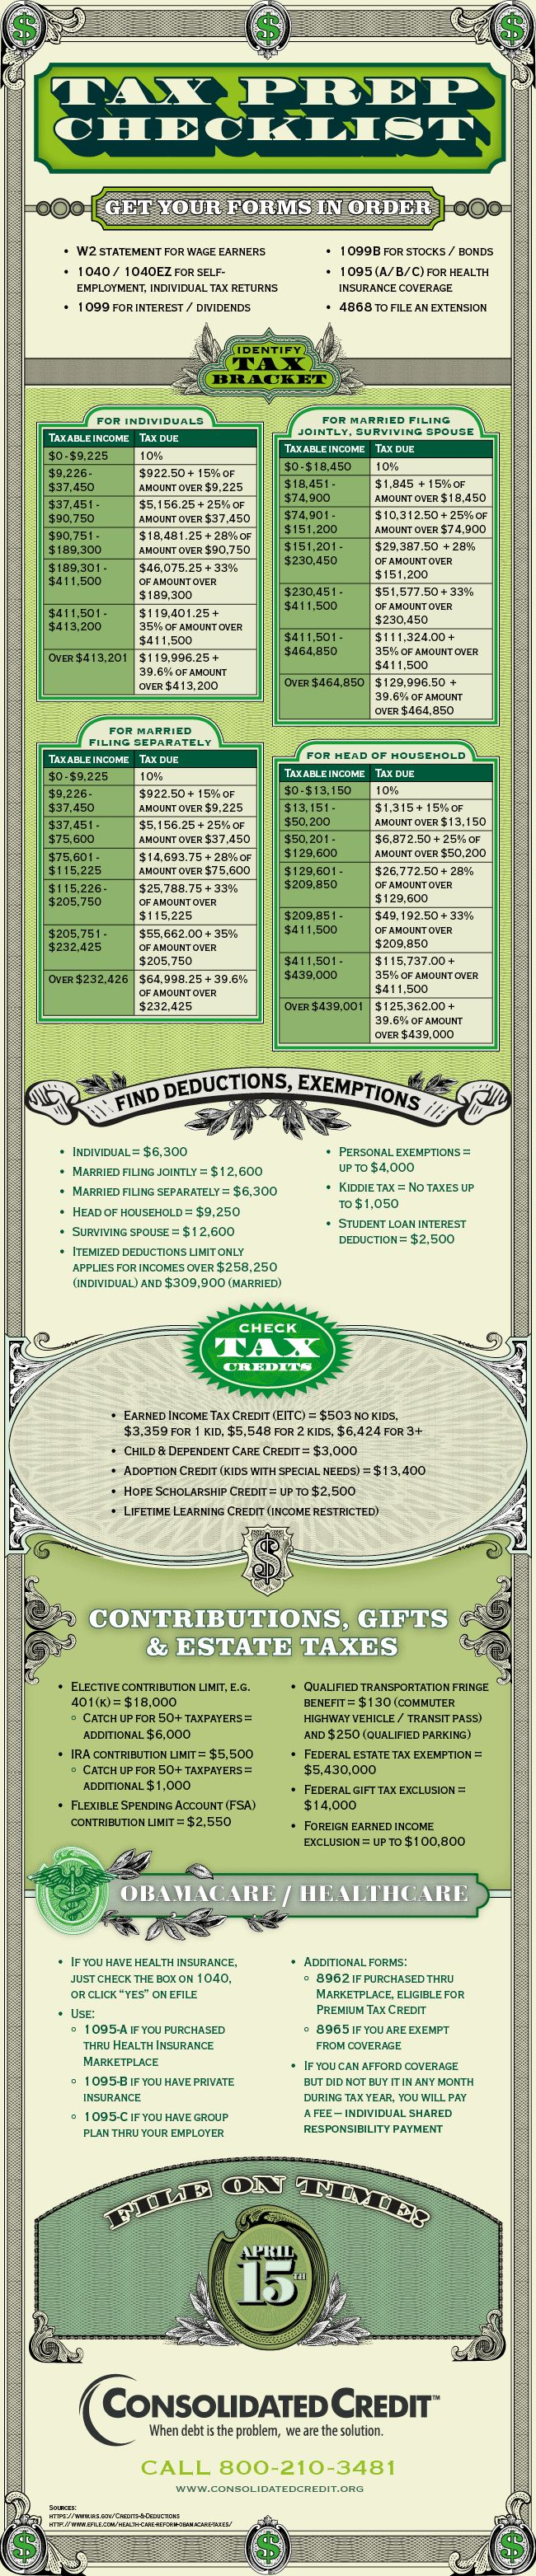 Infographic: It's tax season and time to get organized to ensure you file by April 15. This checklist helps you gather the forms you need, identify your tax bracket and claim all of the deductions and credits available. We also explain how Obamacare works so you can maximize your refund and file hassle-free.